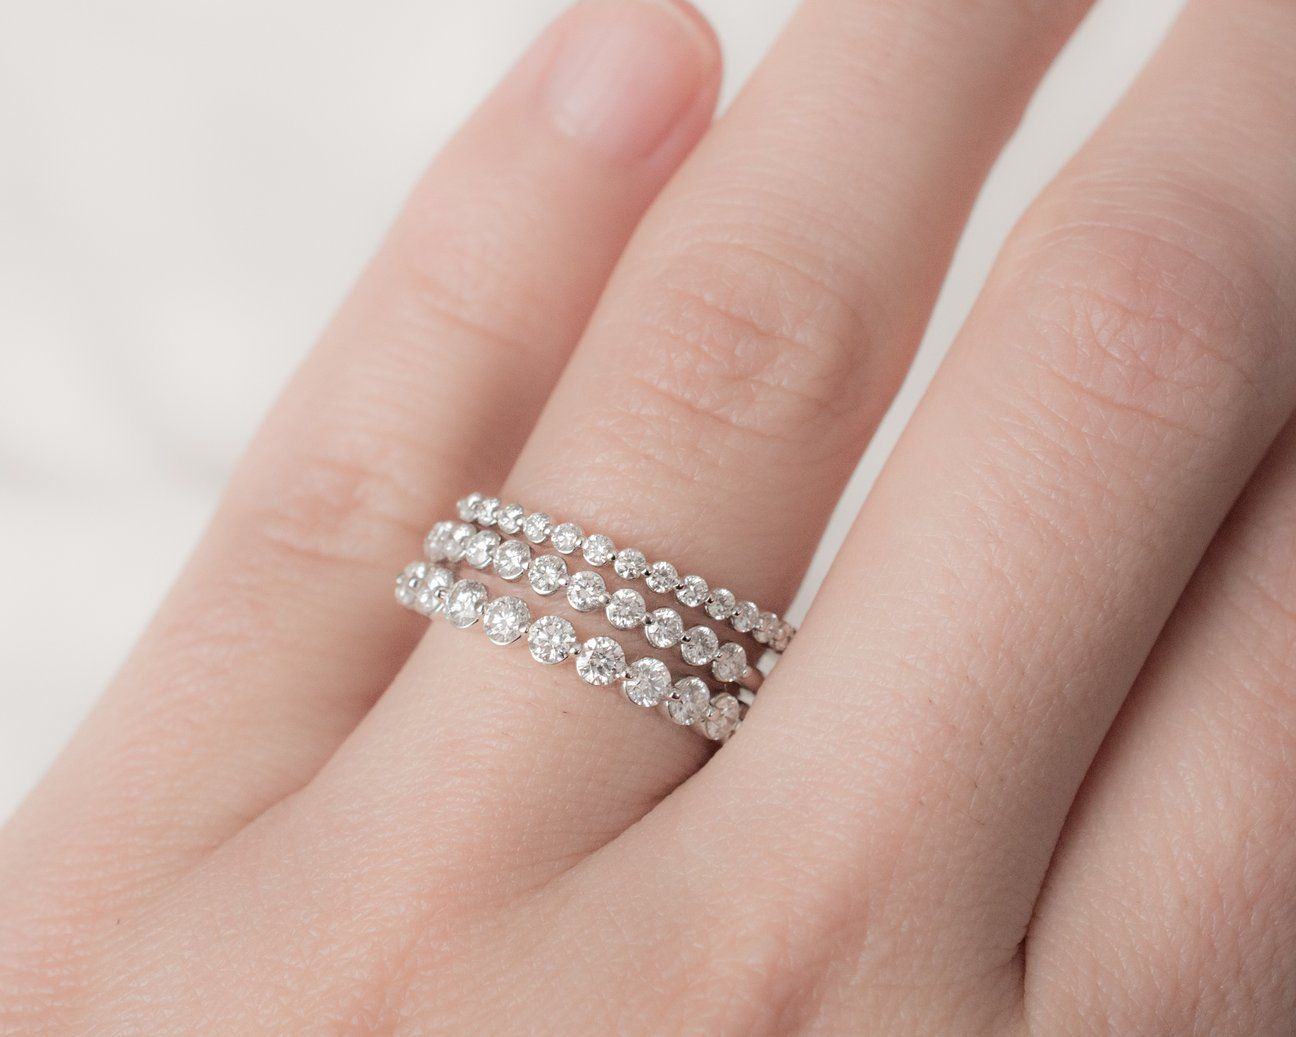 Ava Ring | Rings | Pinterest | Diamond bands, Solid gold and Round ...